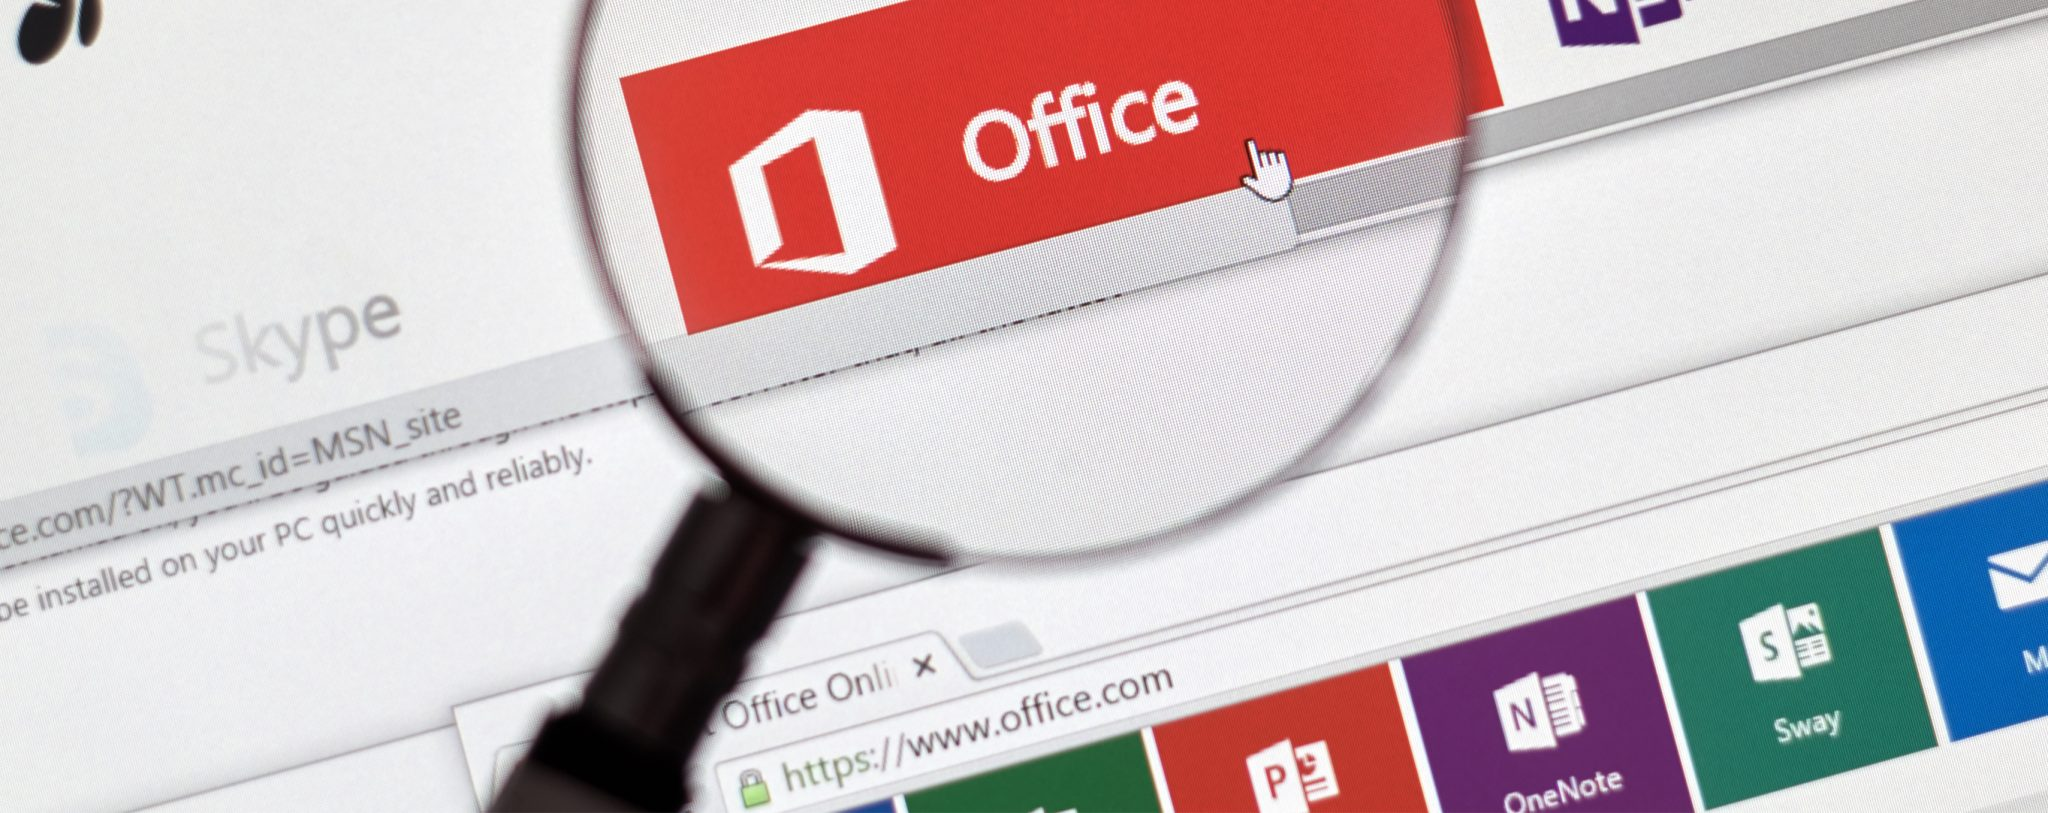 microsoft office home and student 2016 installer download